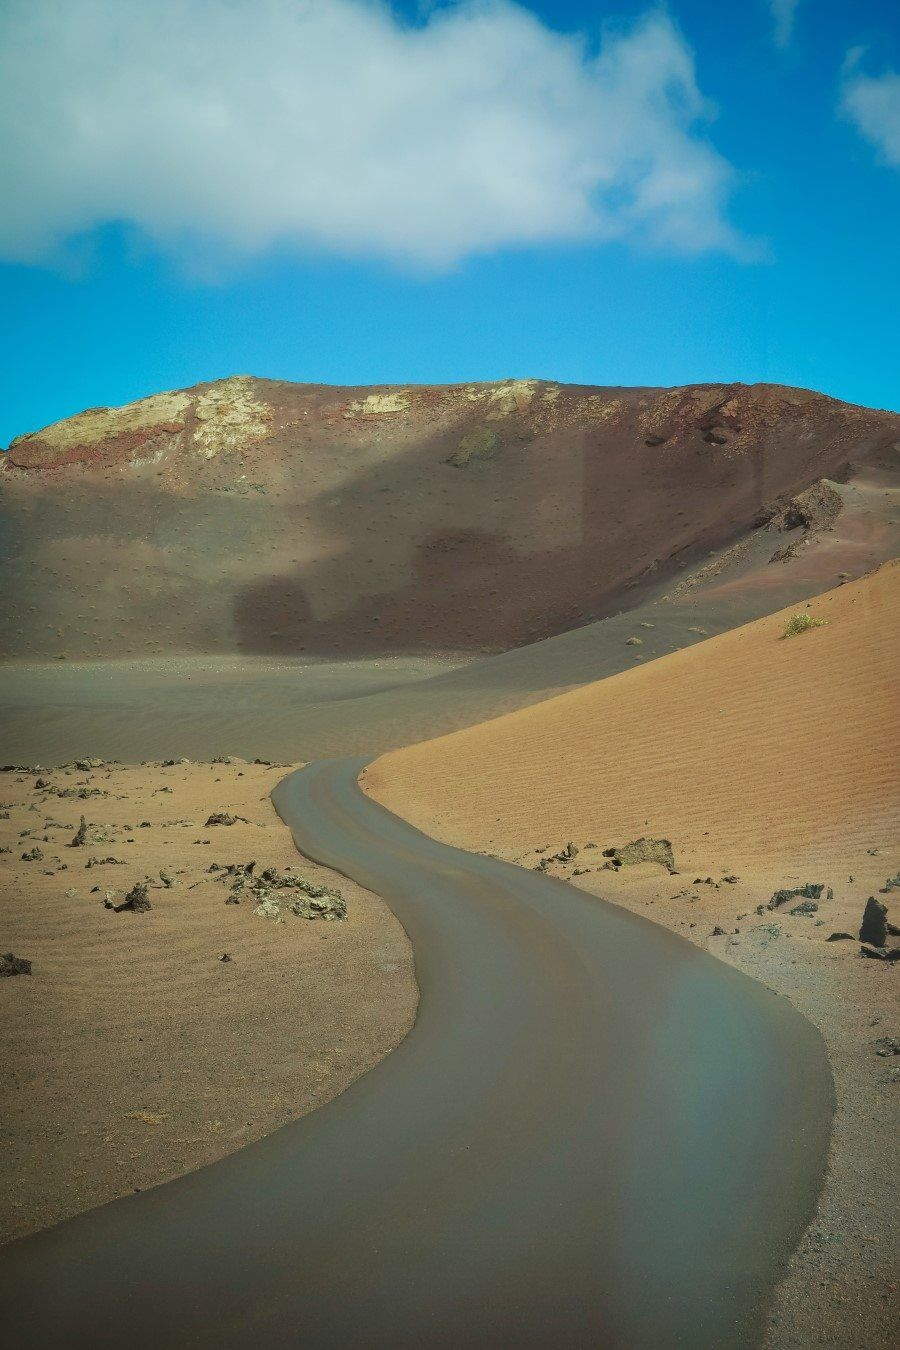 Timanfaya National Park Lanzarote Photography Locations and Travel Guide by The Wandering Lens